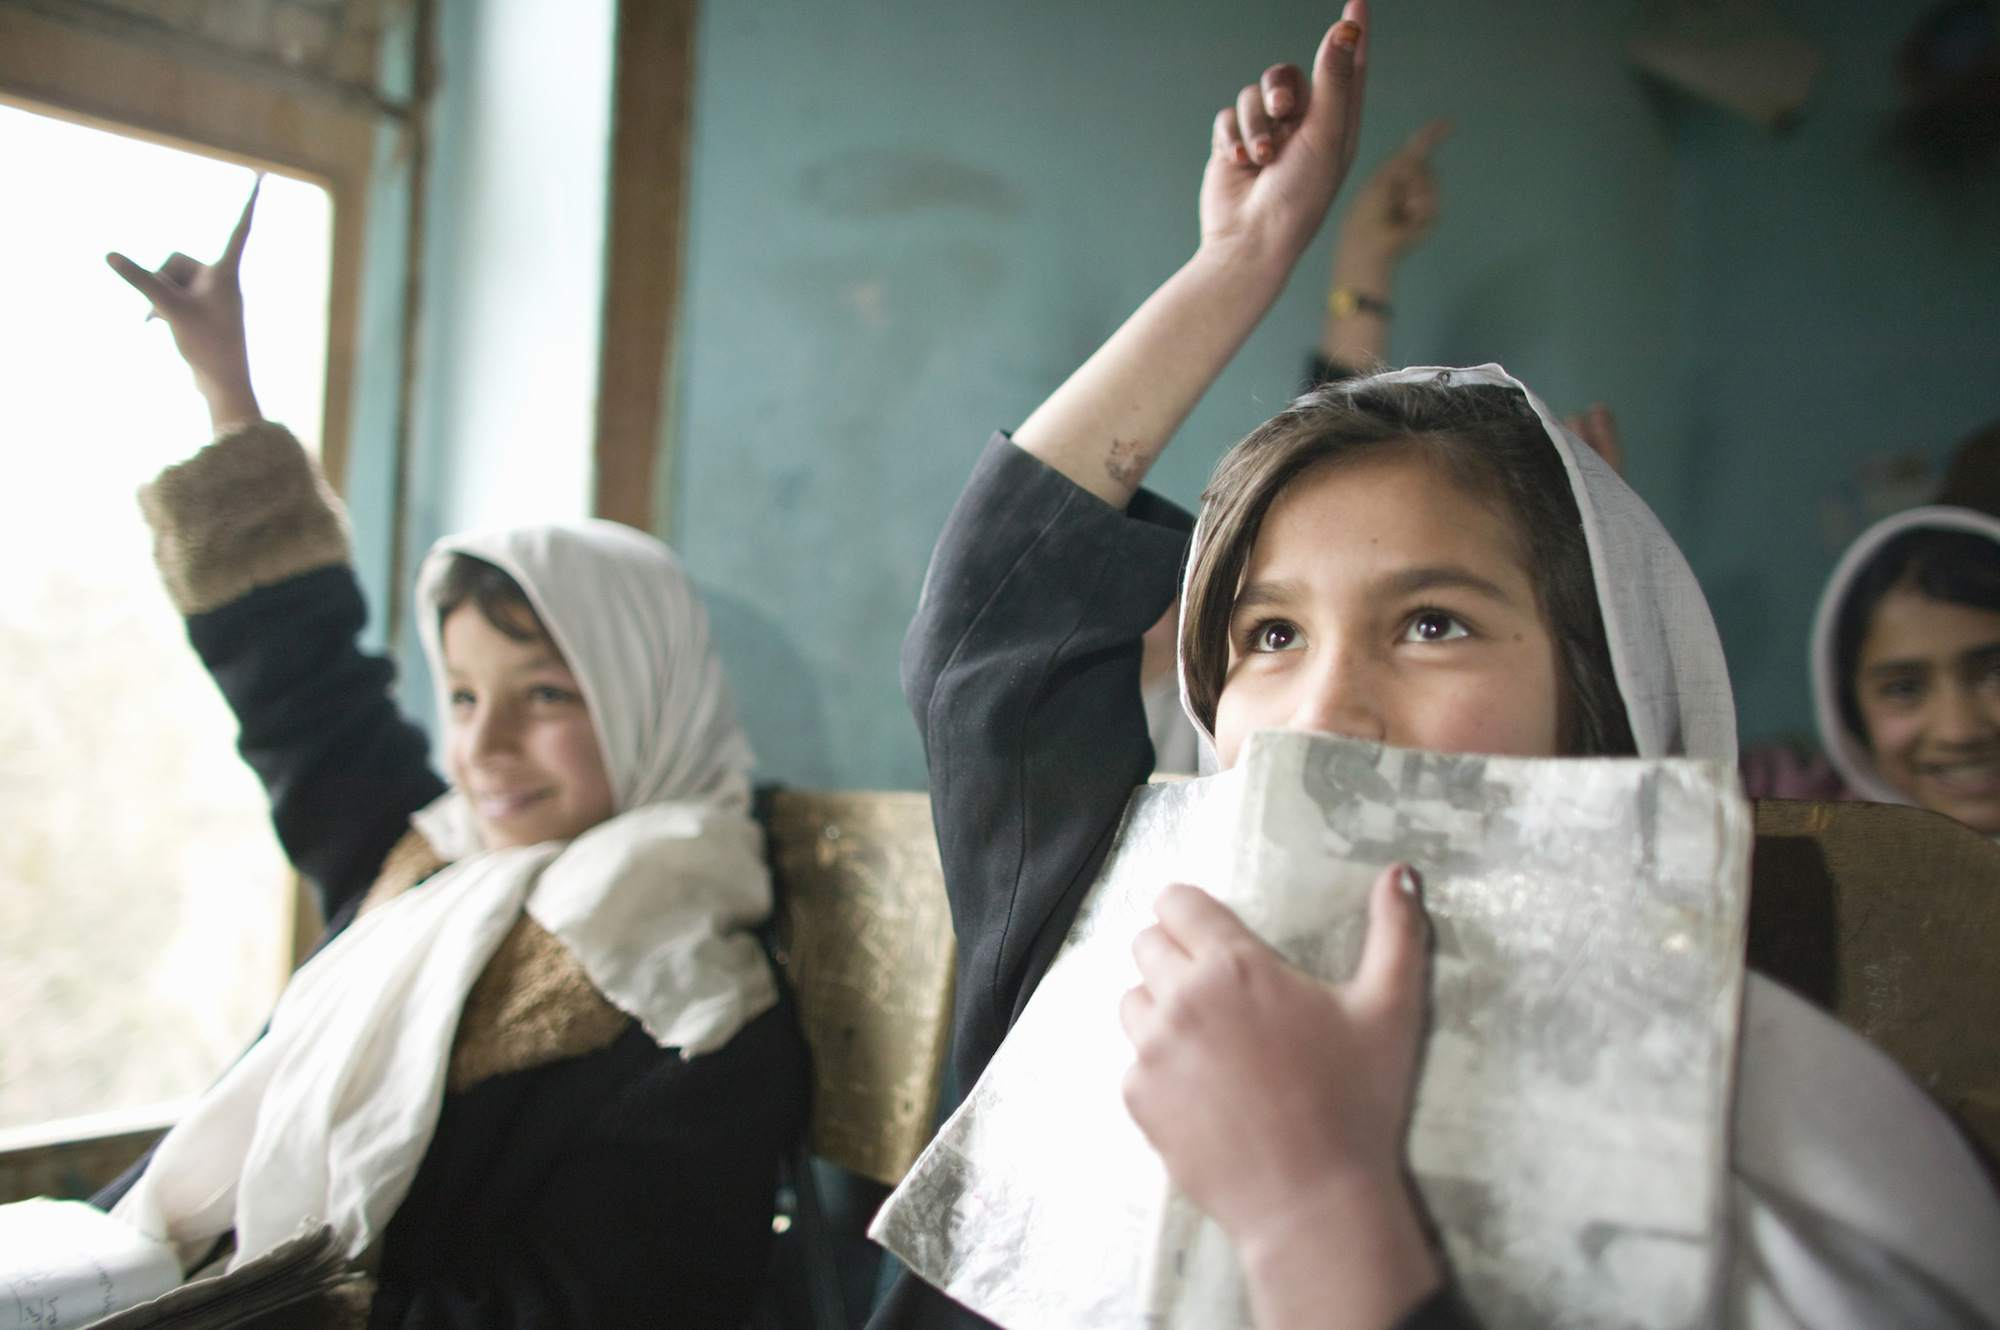 Classroom of Out of School Girls project, Kabul, Afghanistan